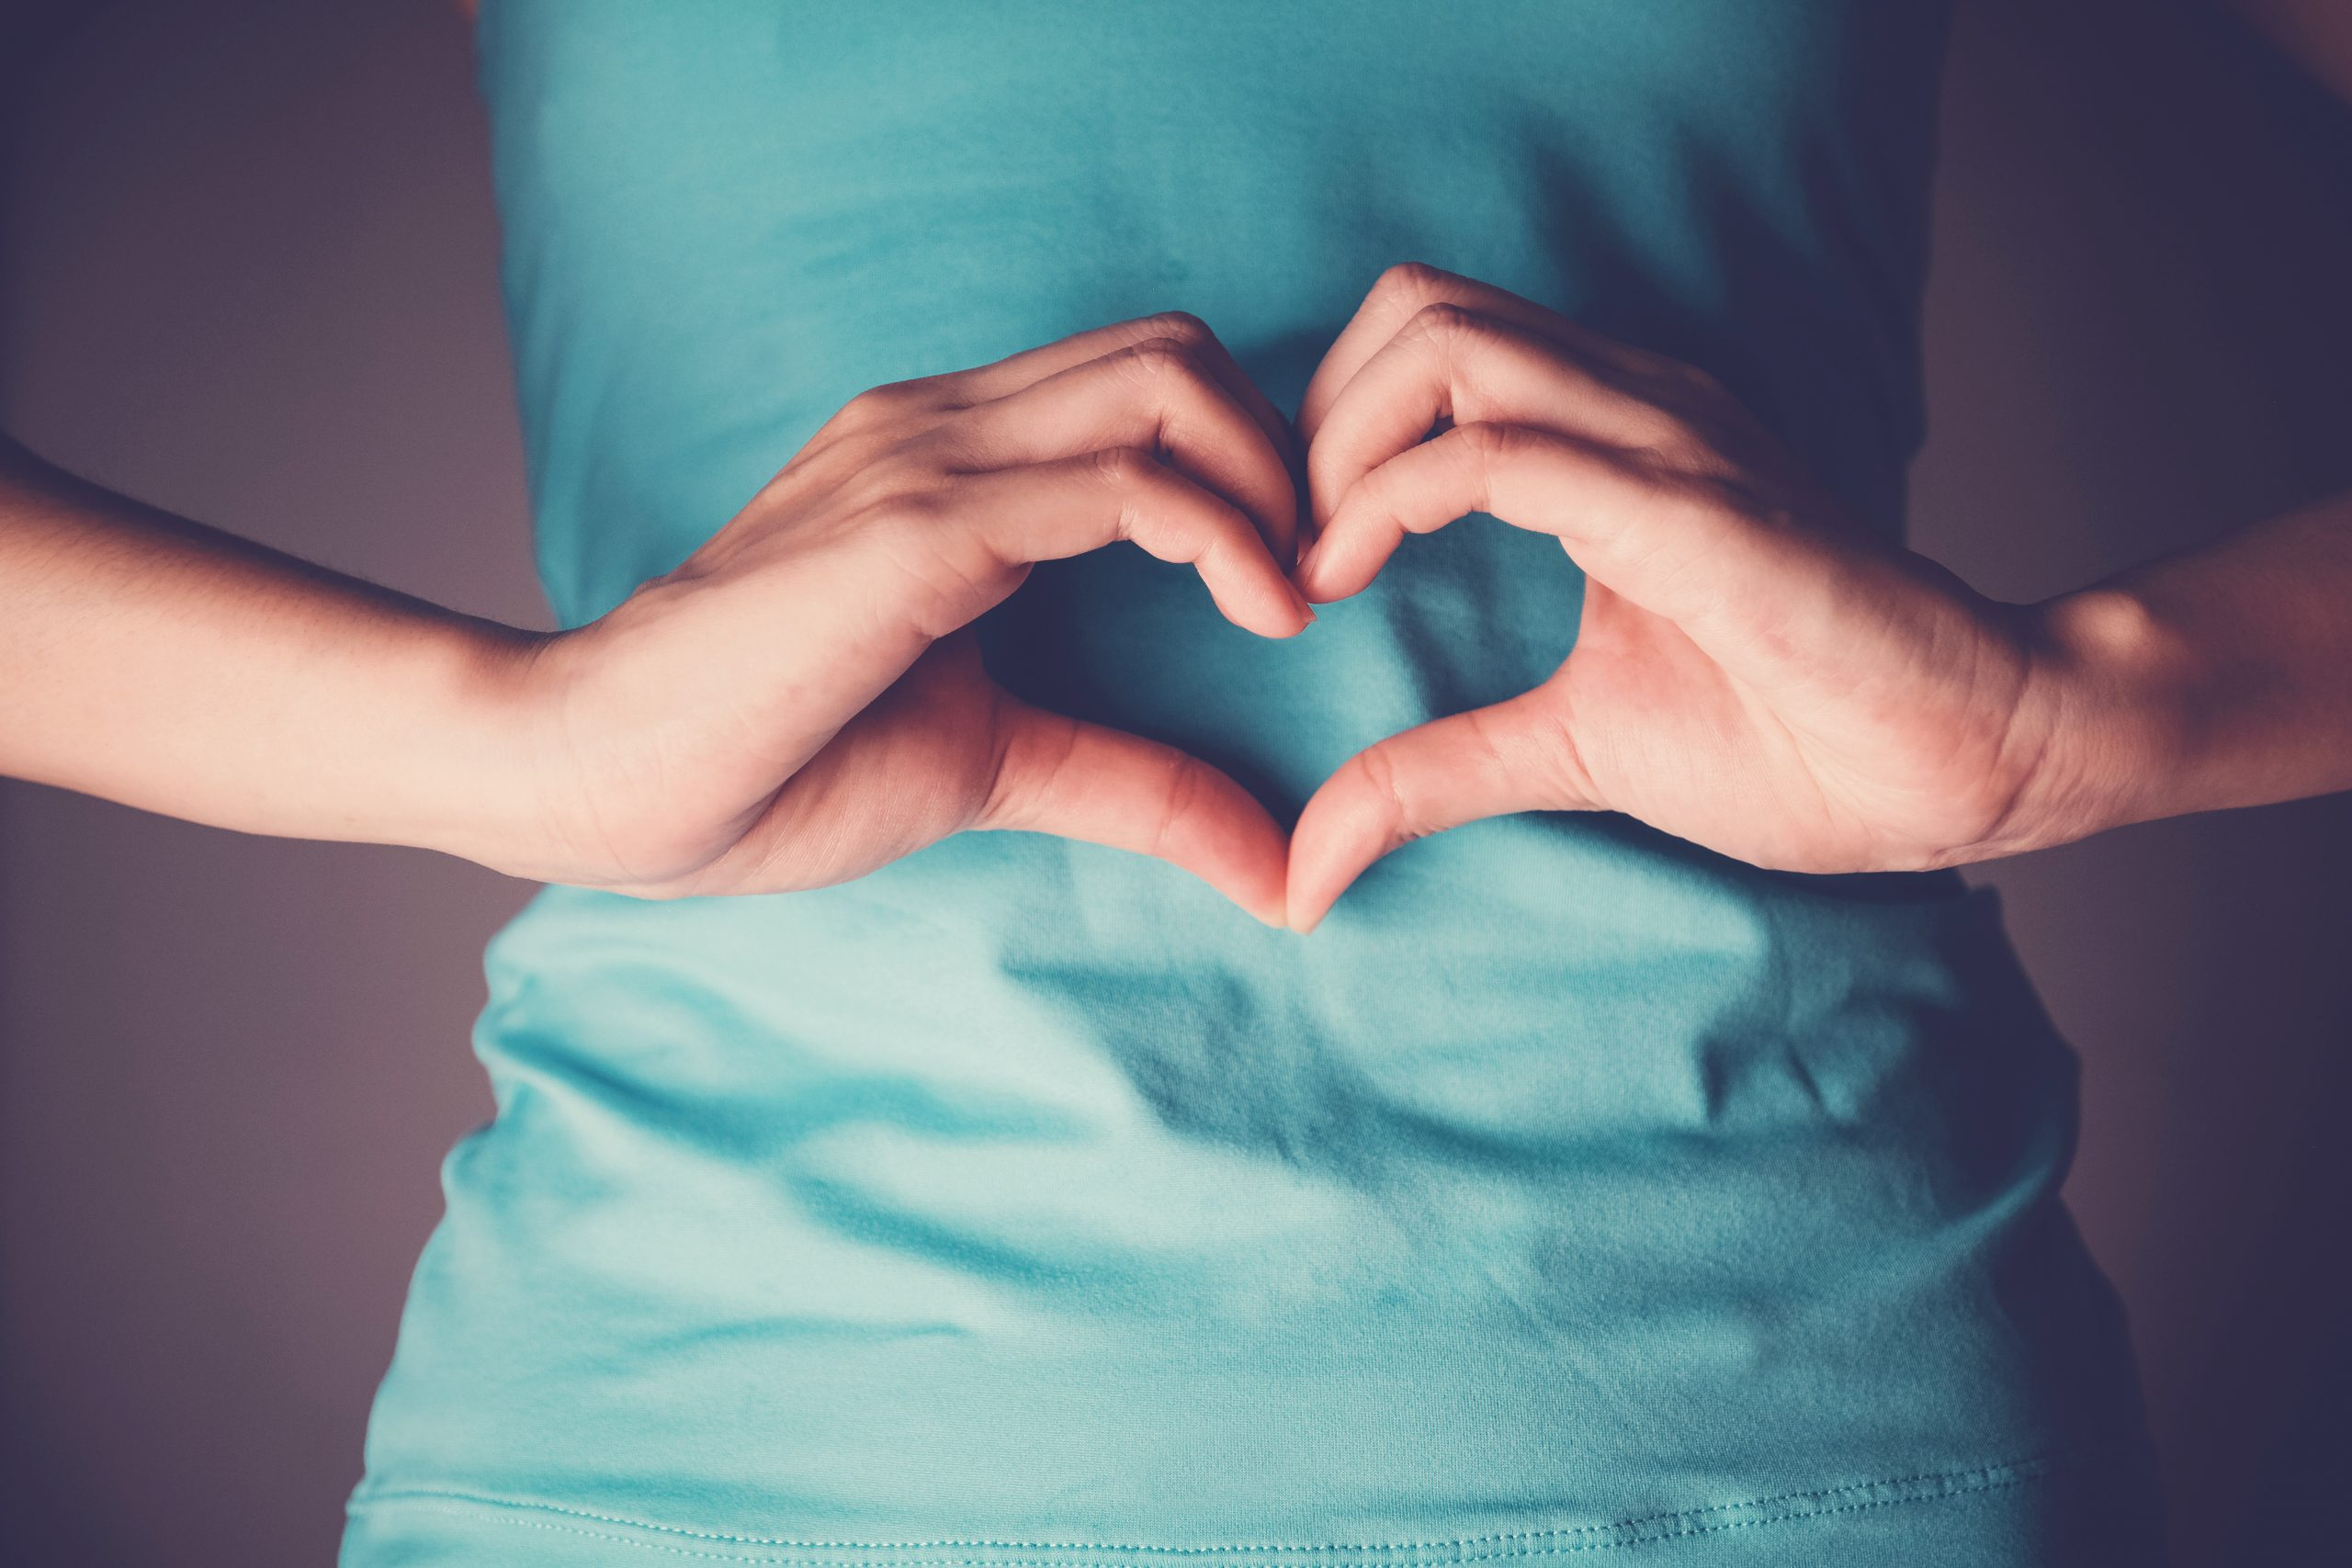 Woman hands making a heart shape on her stomach, IBS, healthy bowel digestion, probiotics for gut health, Sign Language